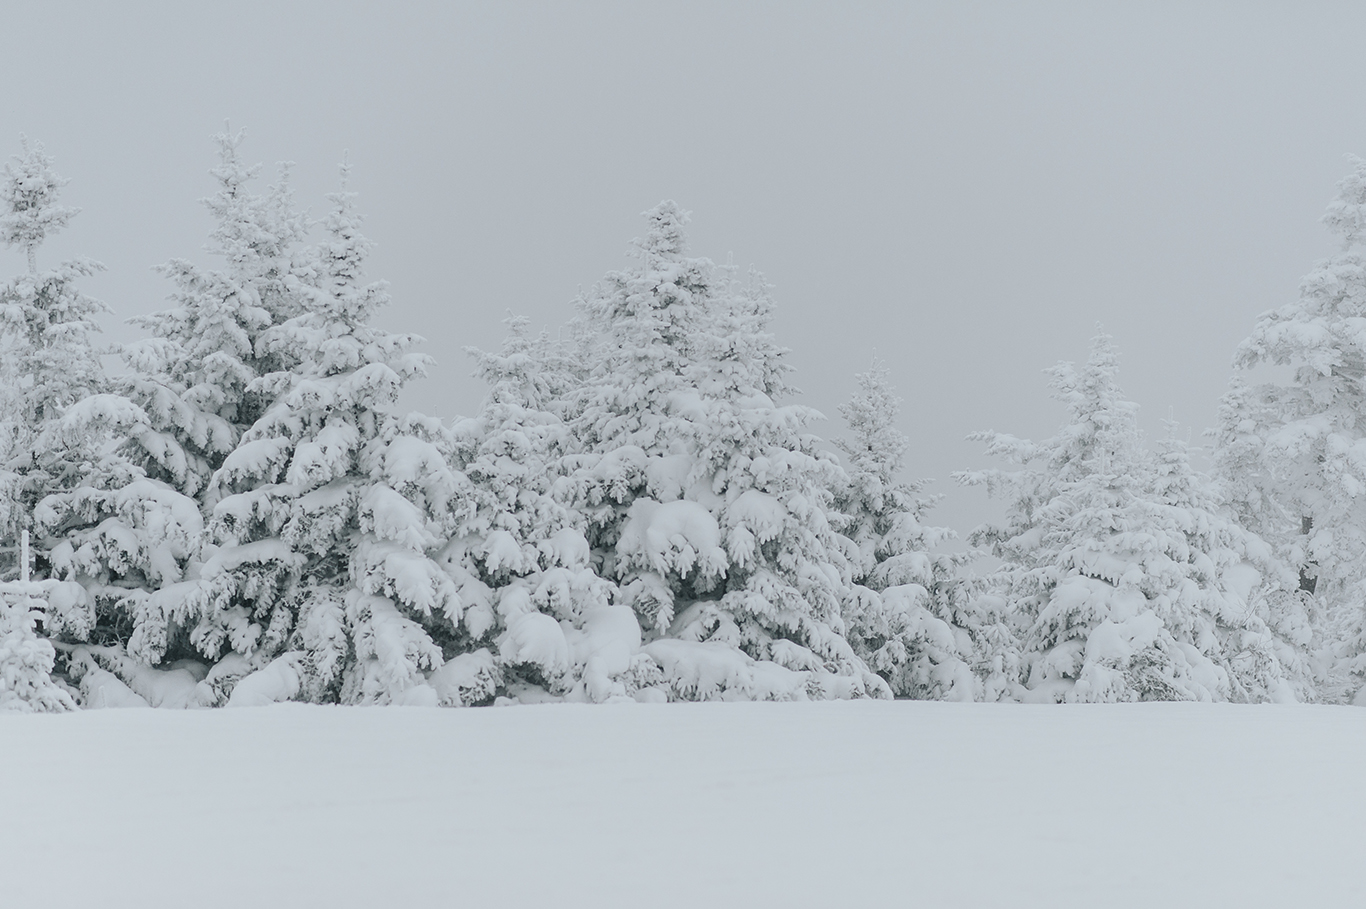 snow-covered-trees-engagement-killington-vermont-idena-photographer.jpg